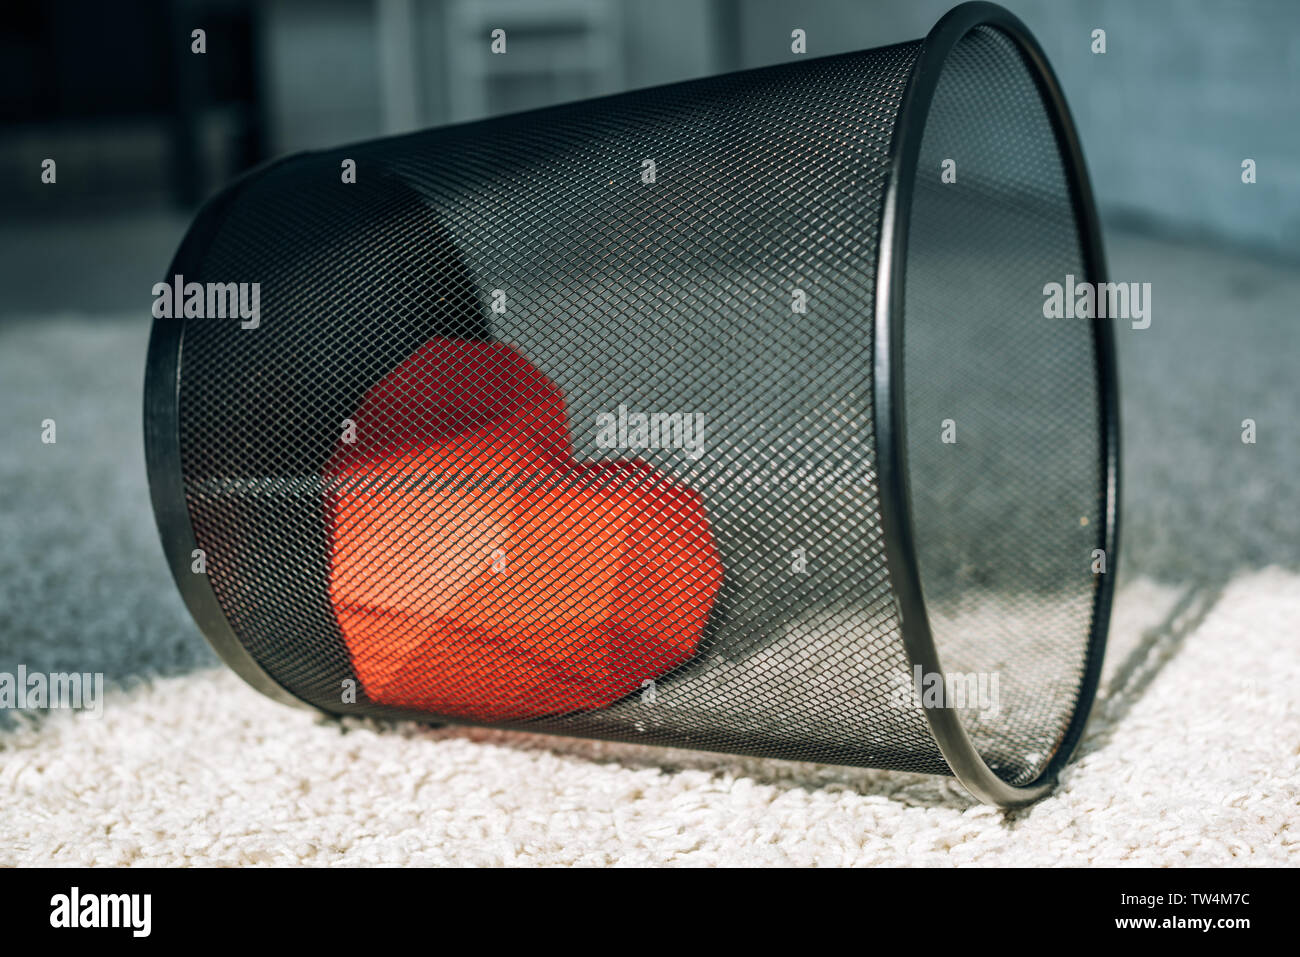 red heart in black trash can on carpet - Stock Image